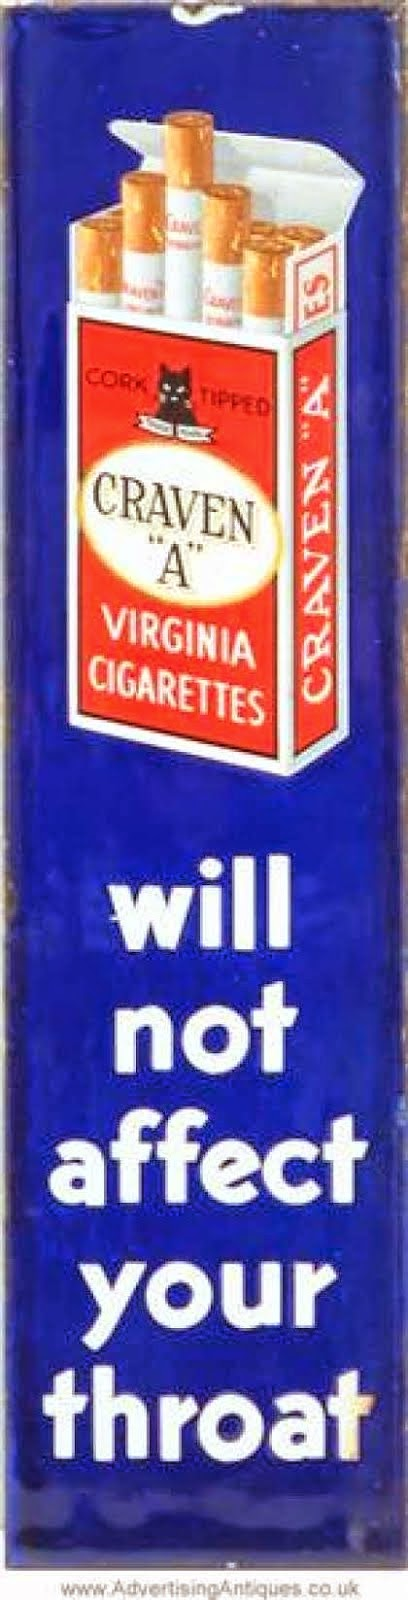 Can you buy United Kingdom cigarettes 555 Mexico